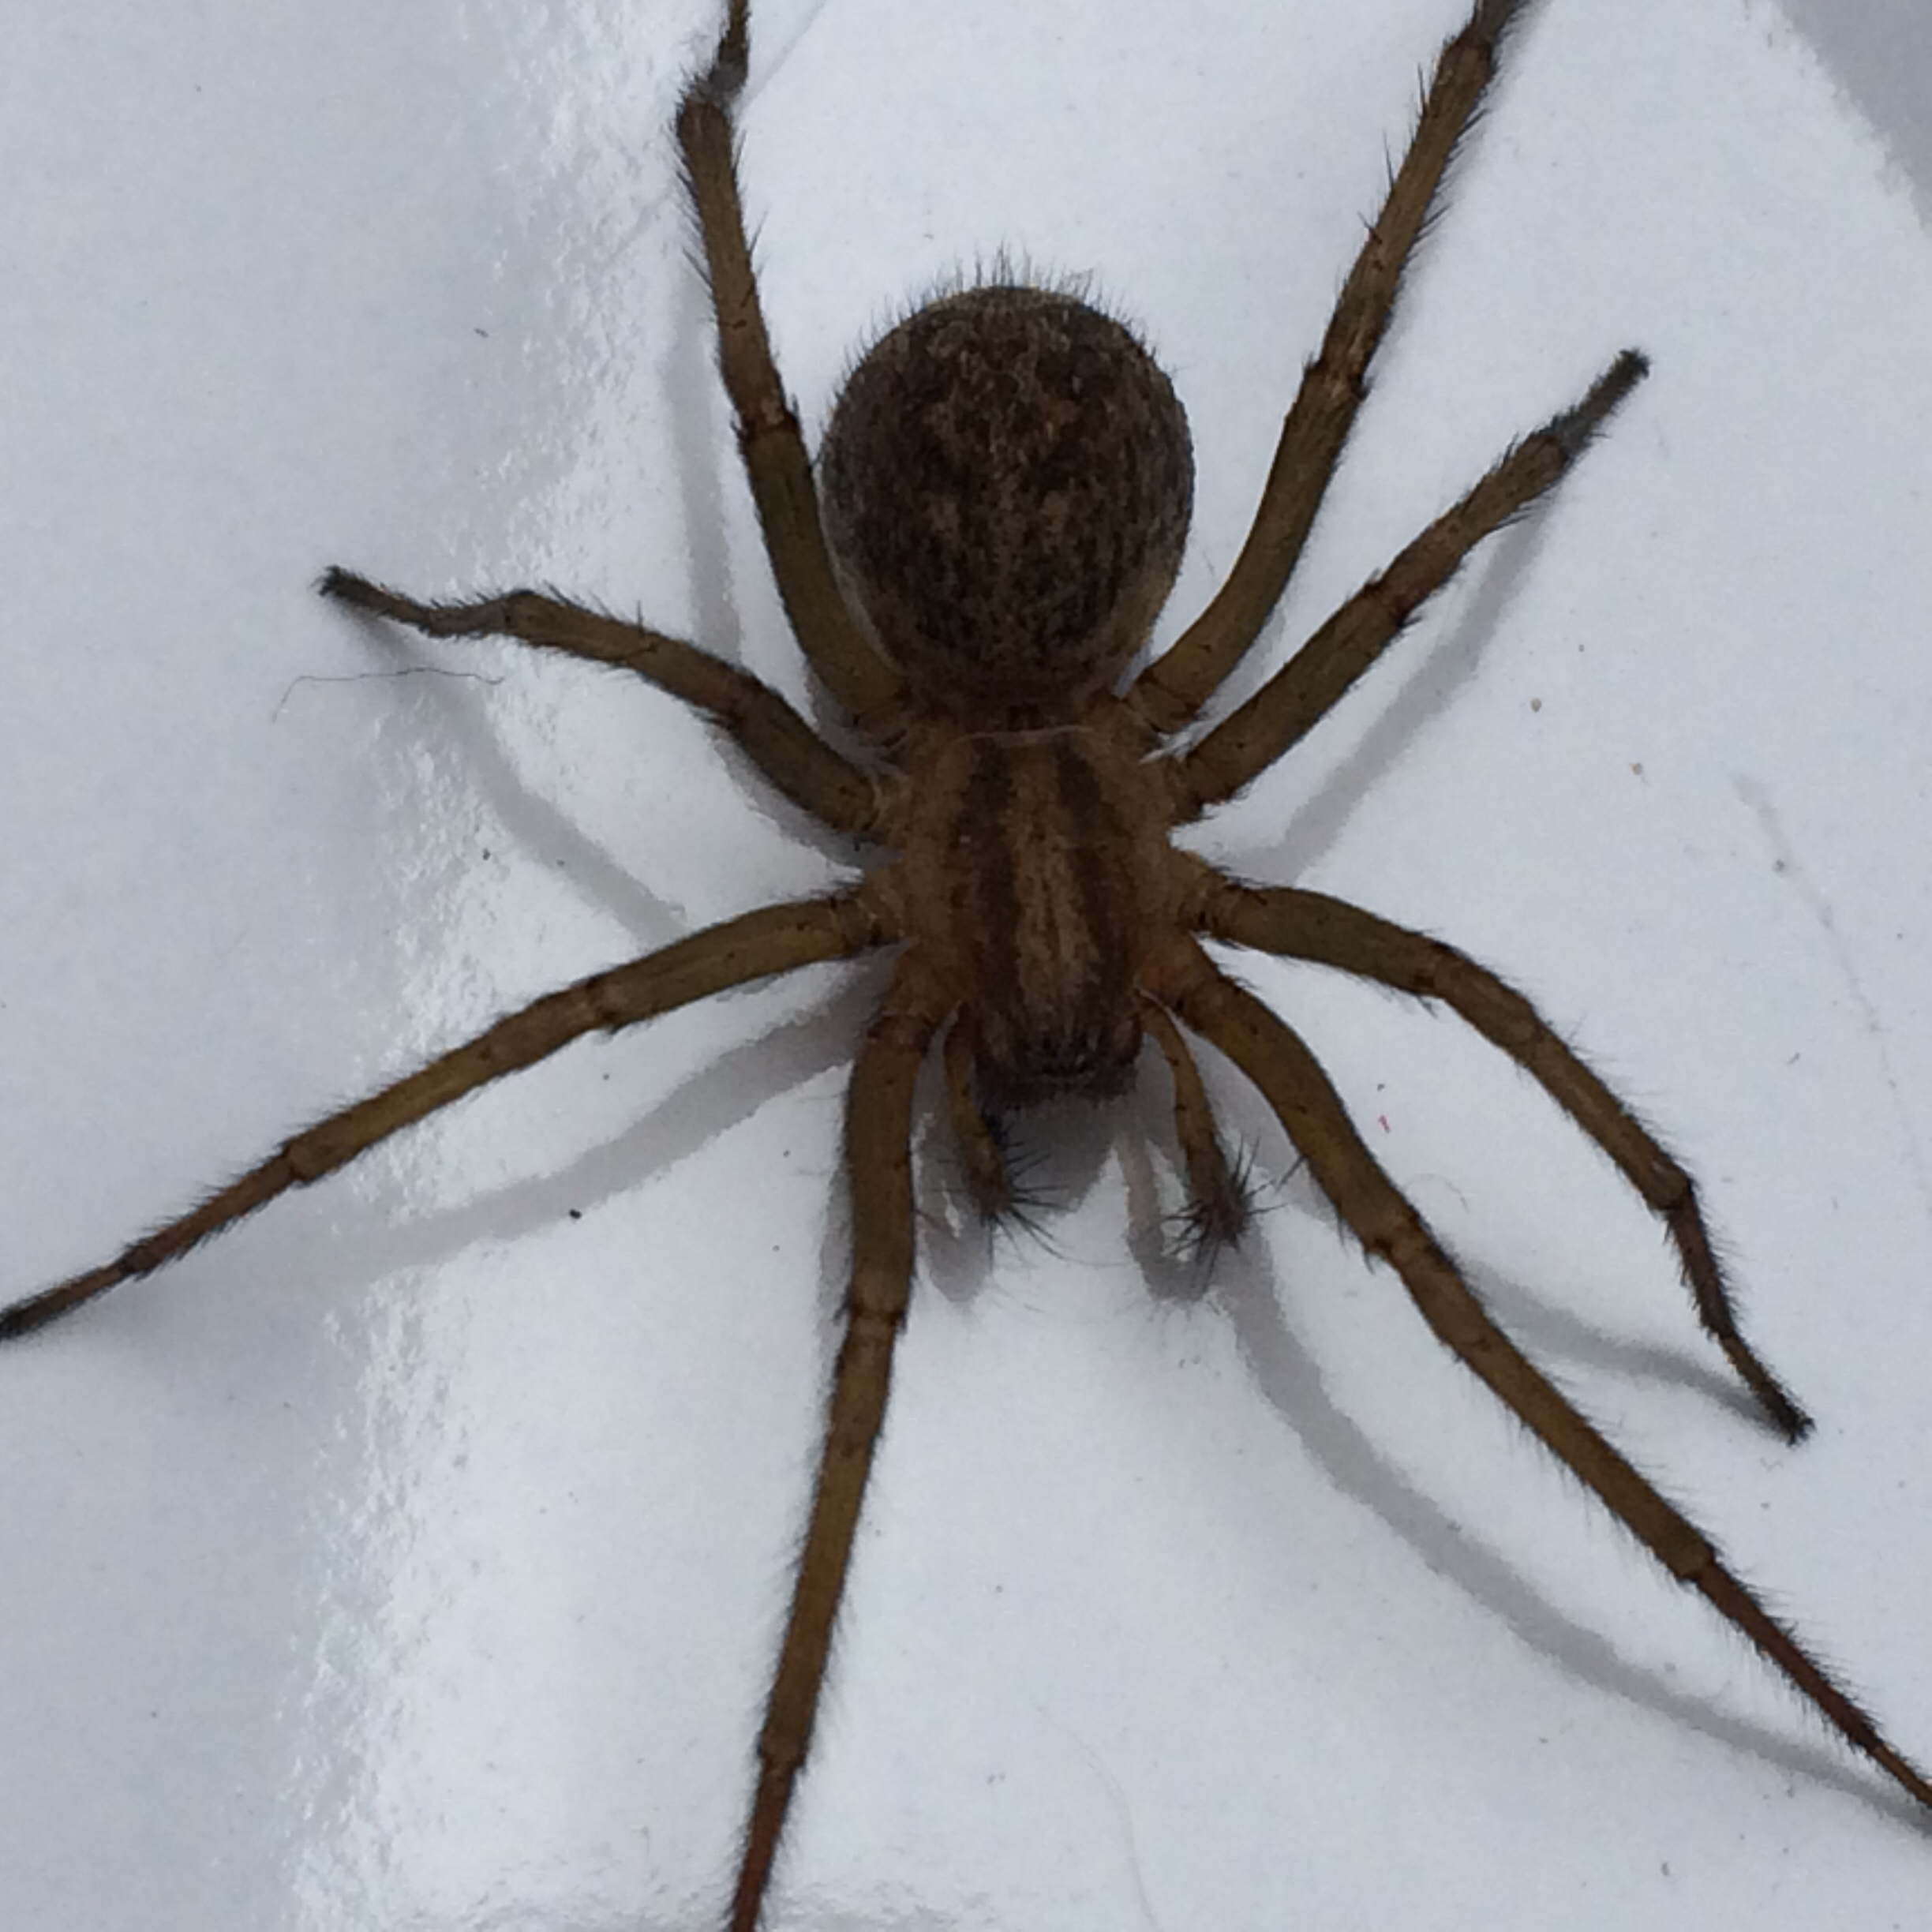 Help! Is this a brown recluse spider? Found in my basement bedroom ...